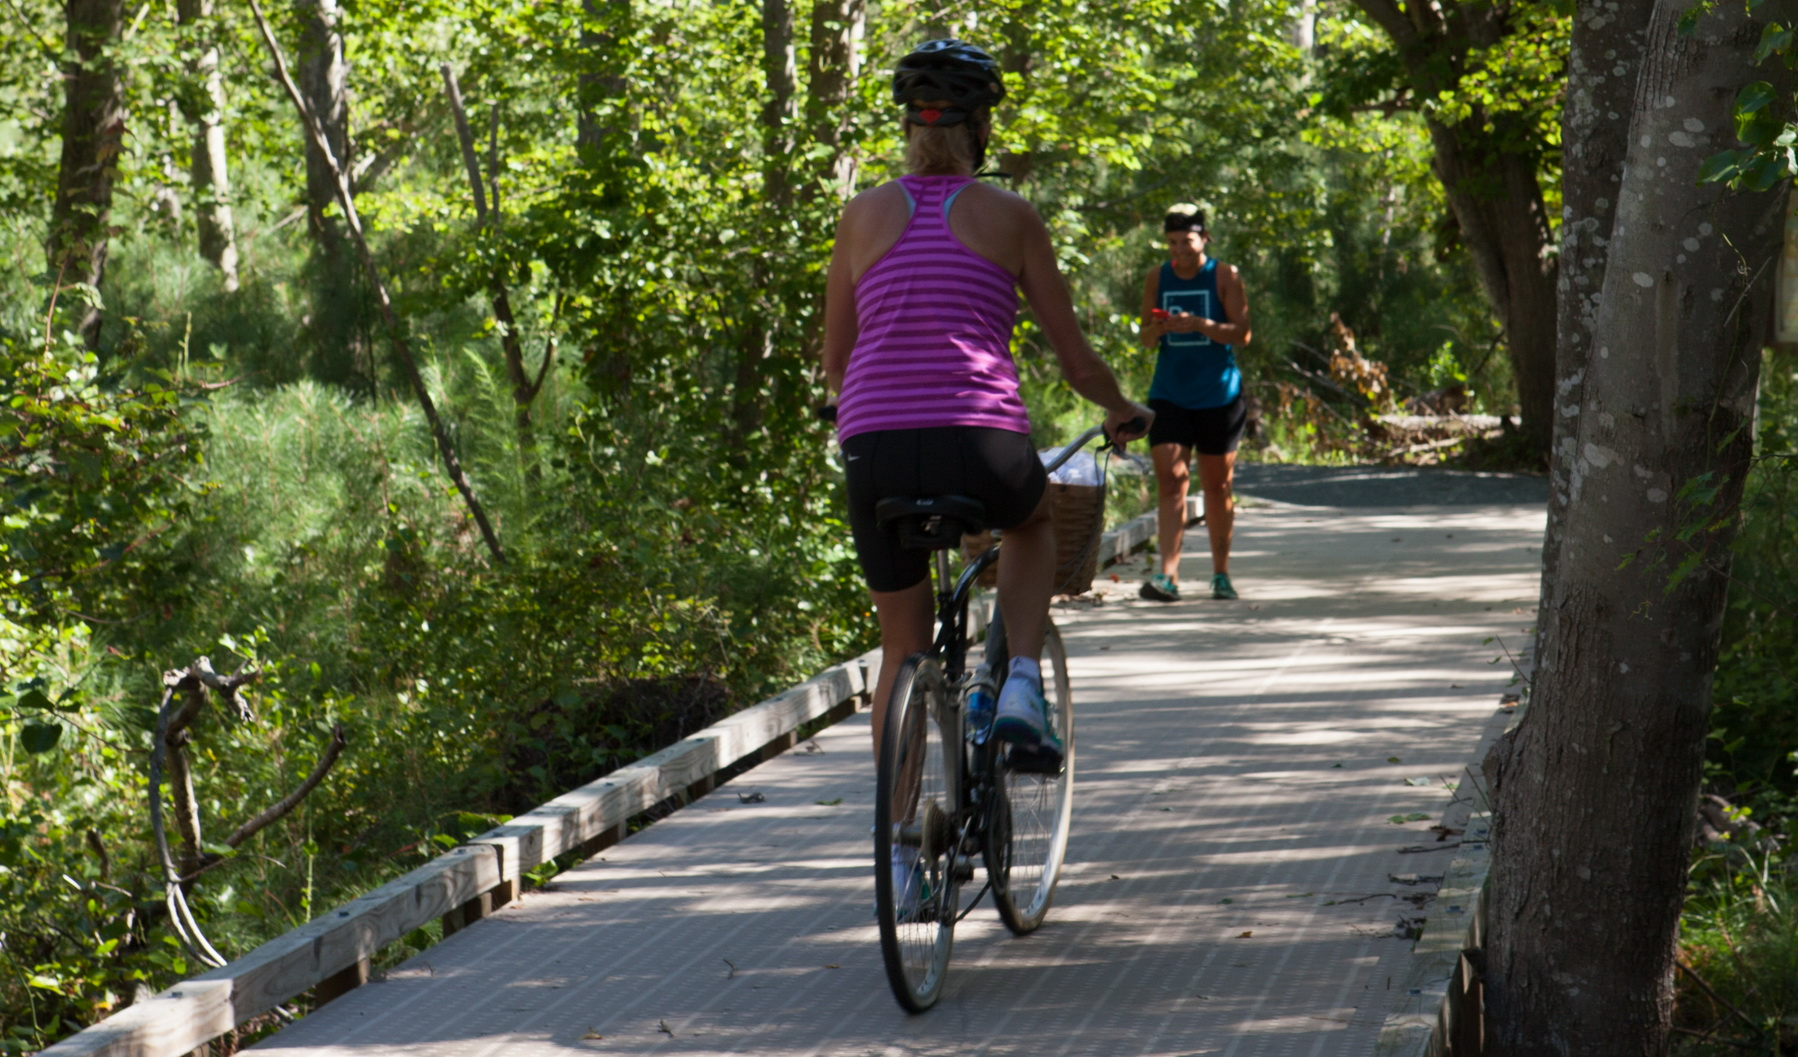 Hikers and bikers beat the heat on a cool stretch of the Fred Hudson Trail